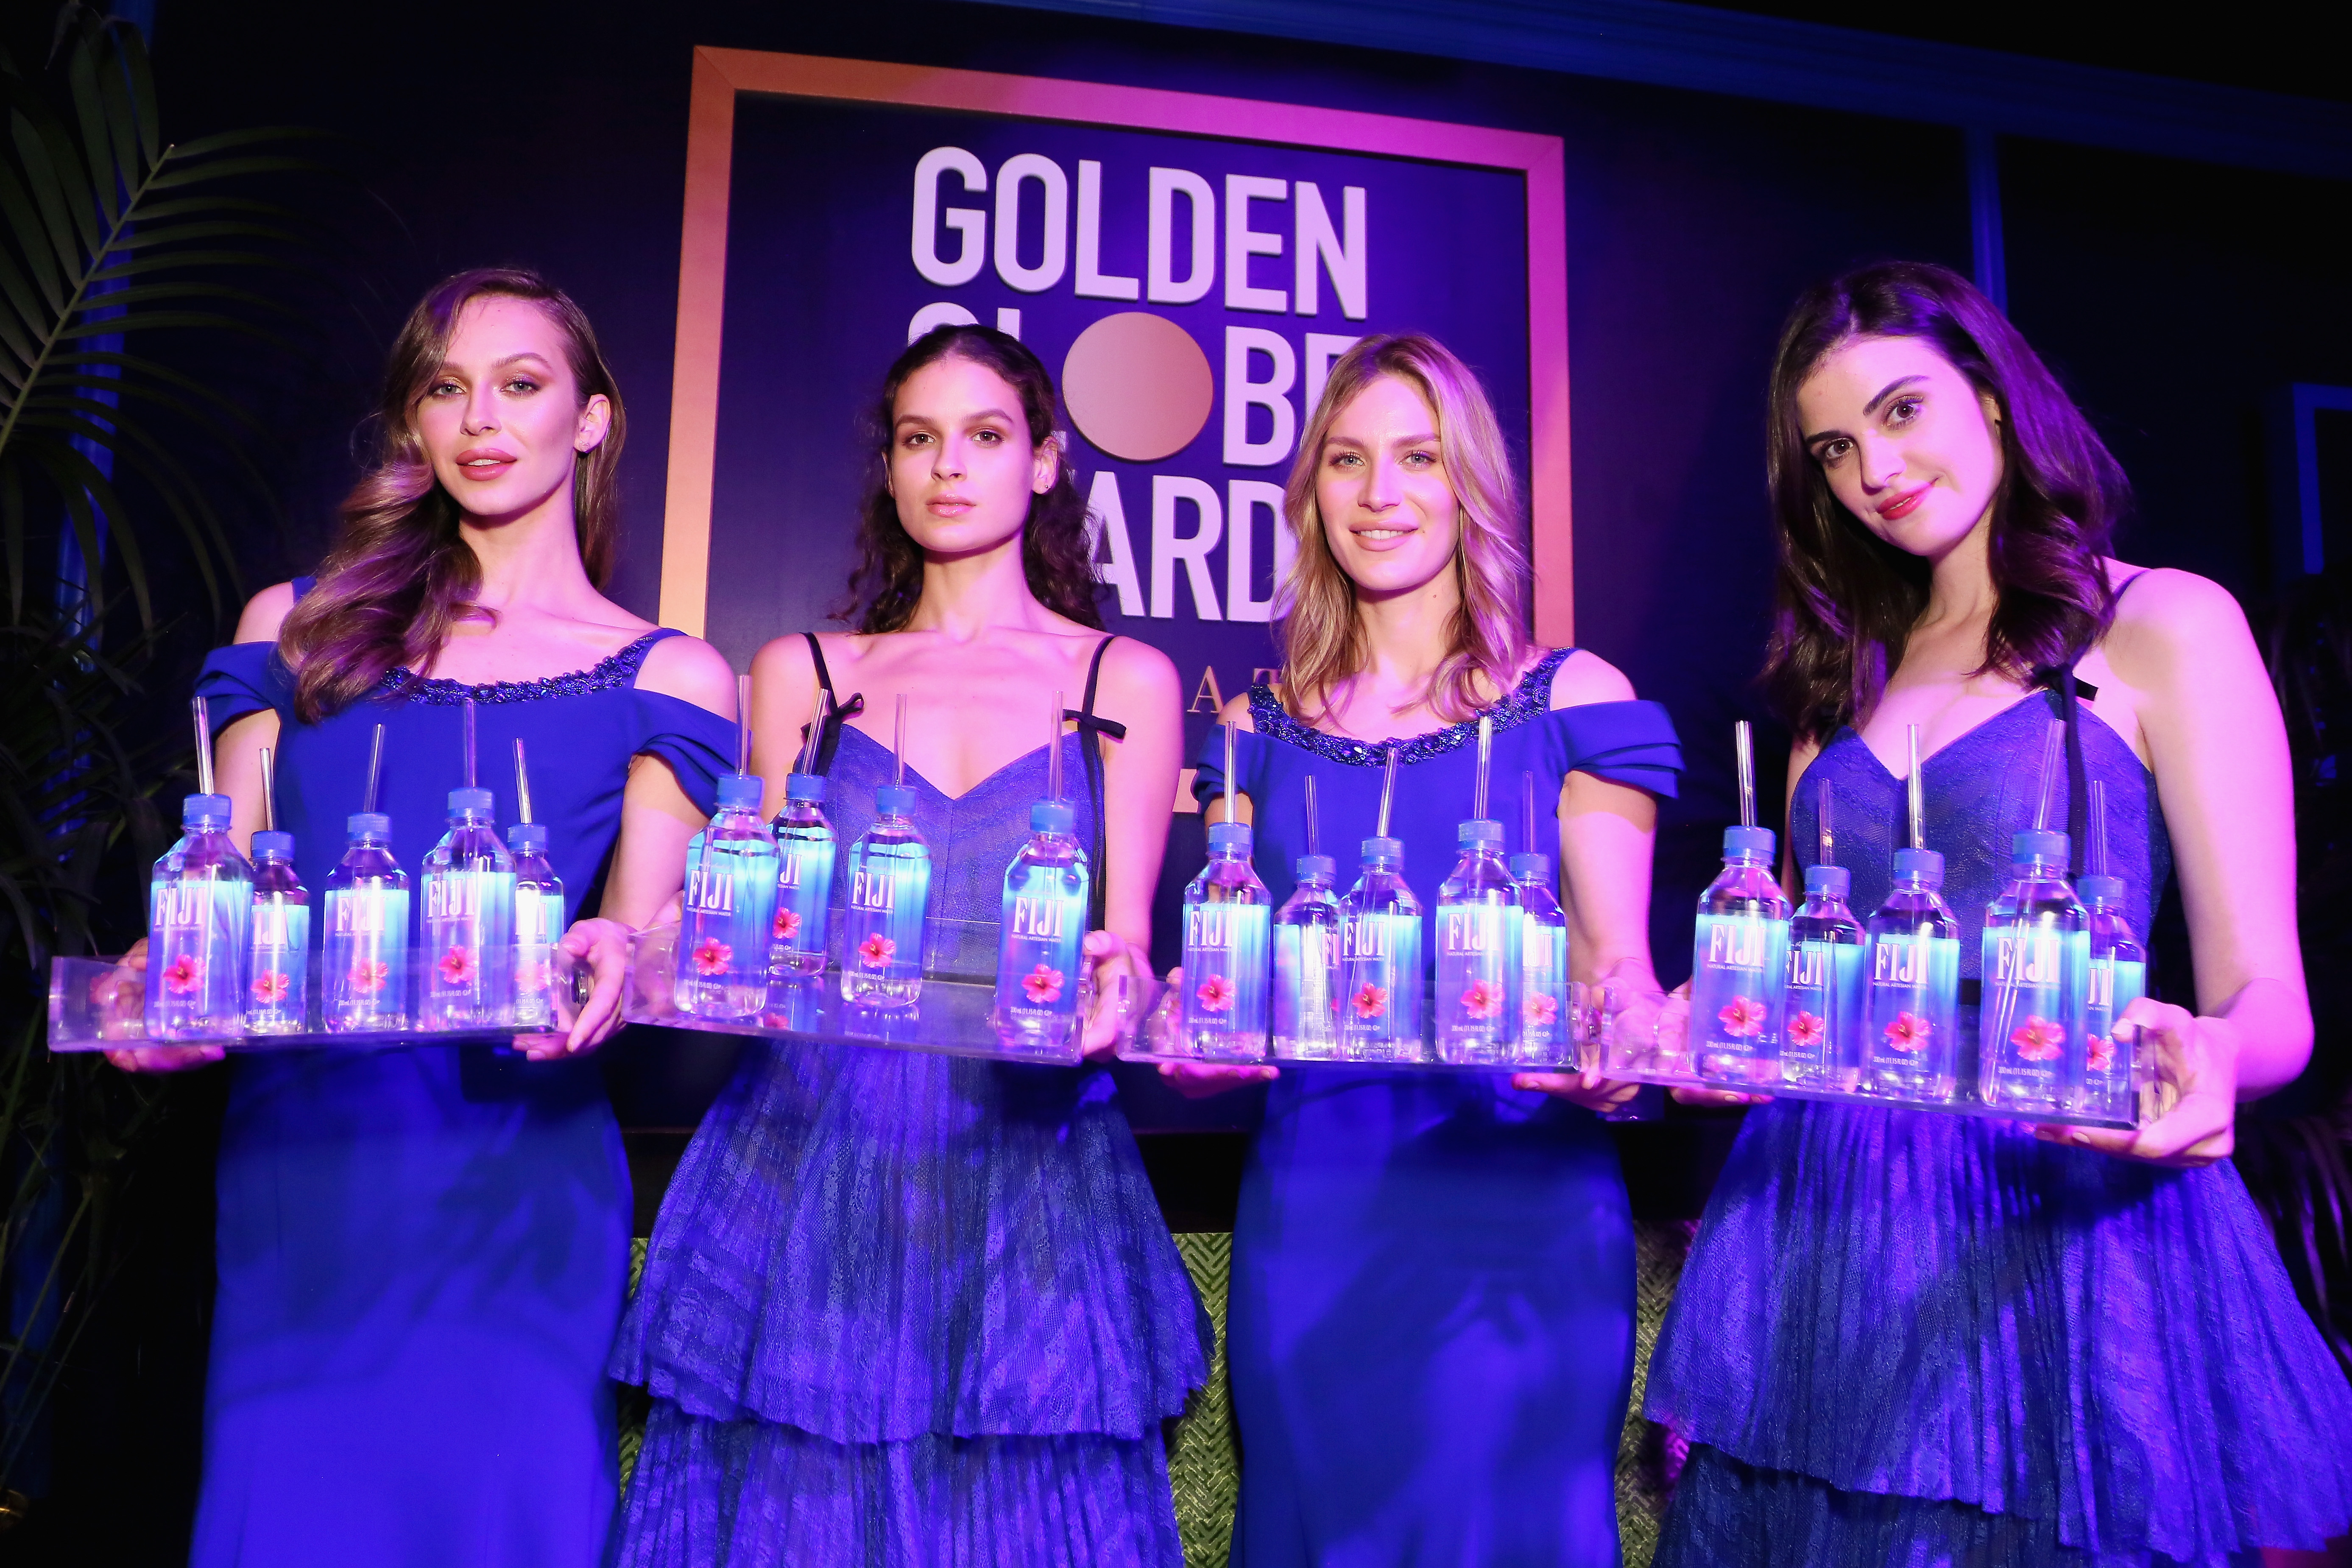 Fiji Water Girl Was The Real Winner At Golden Globes